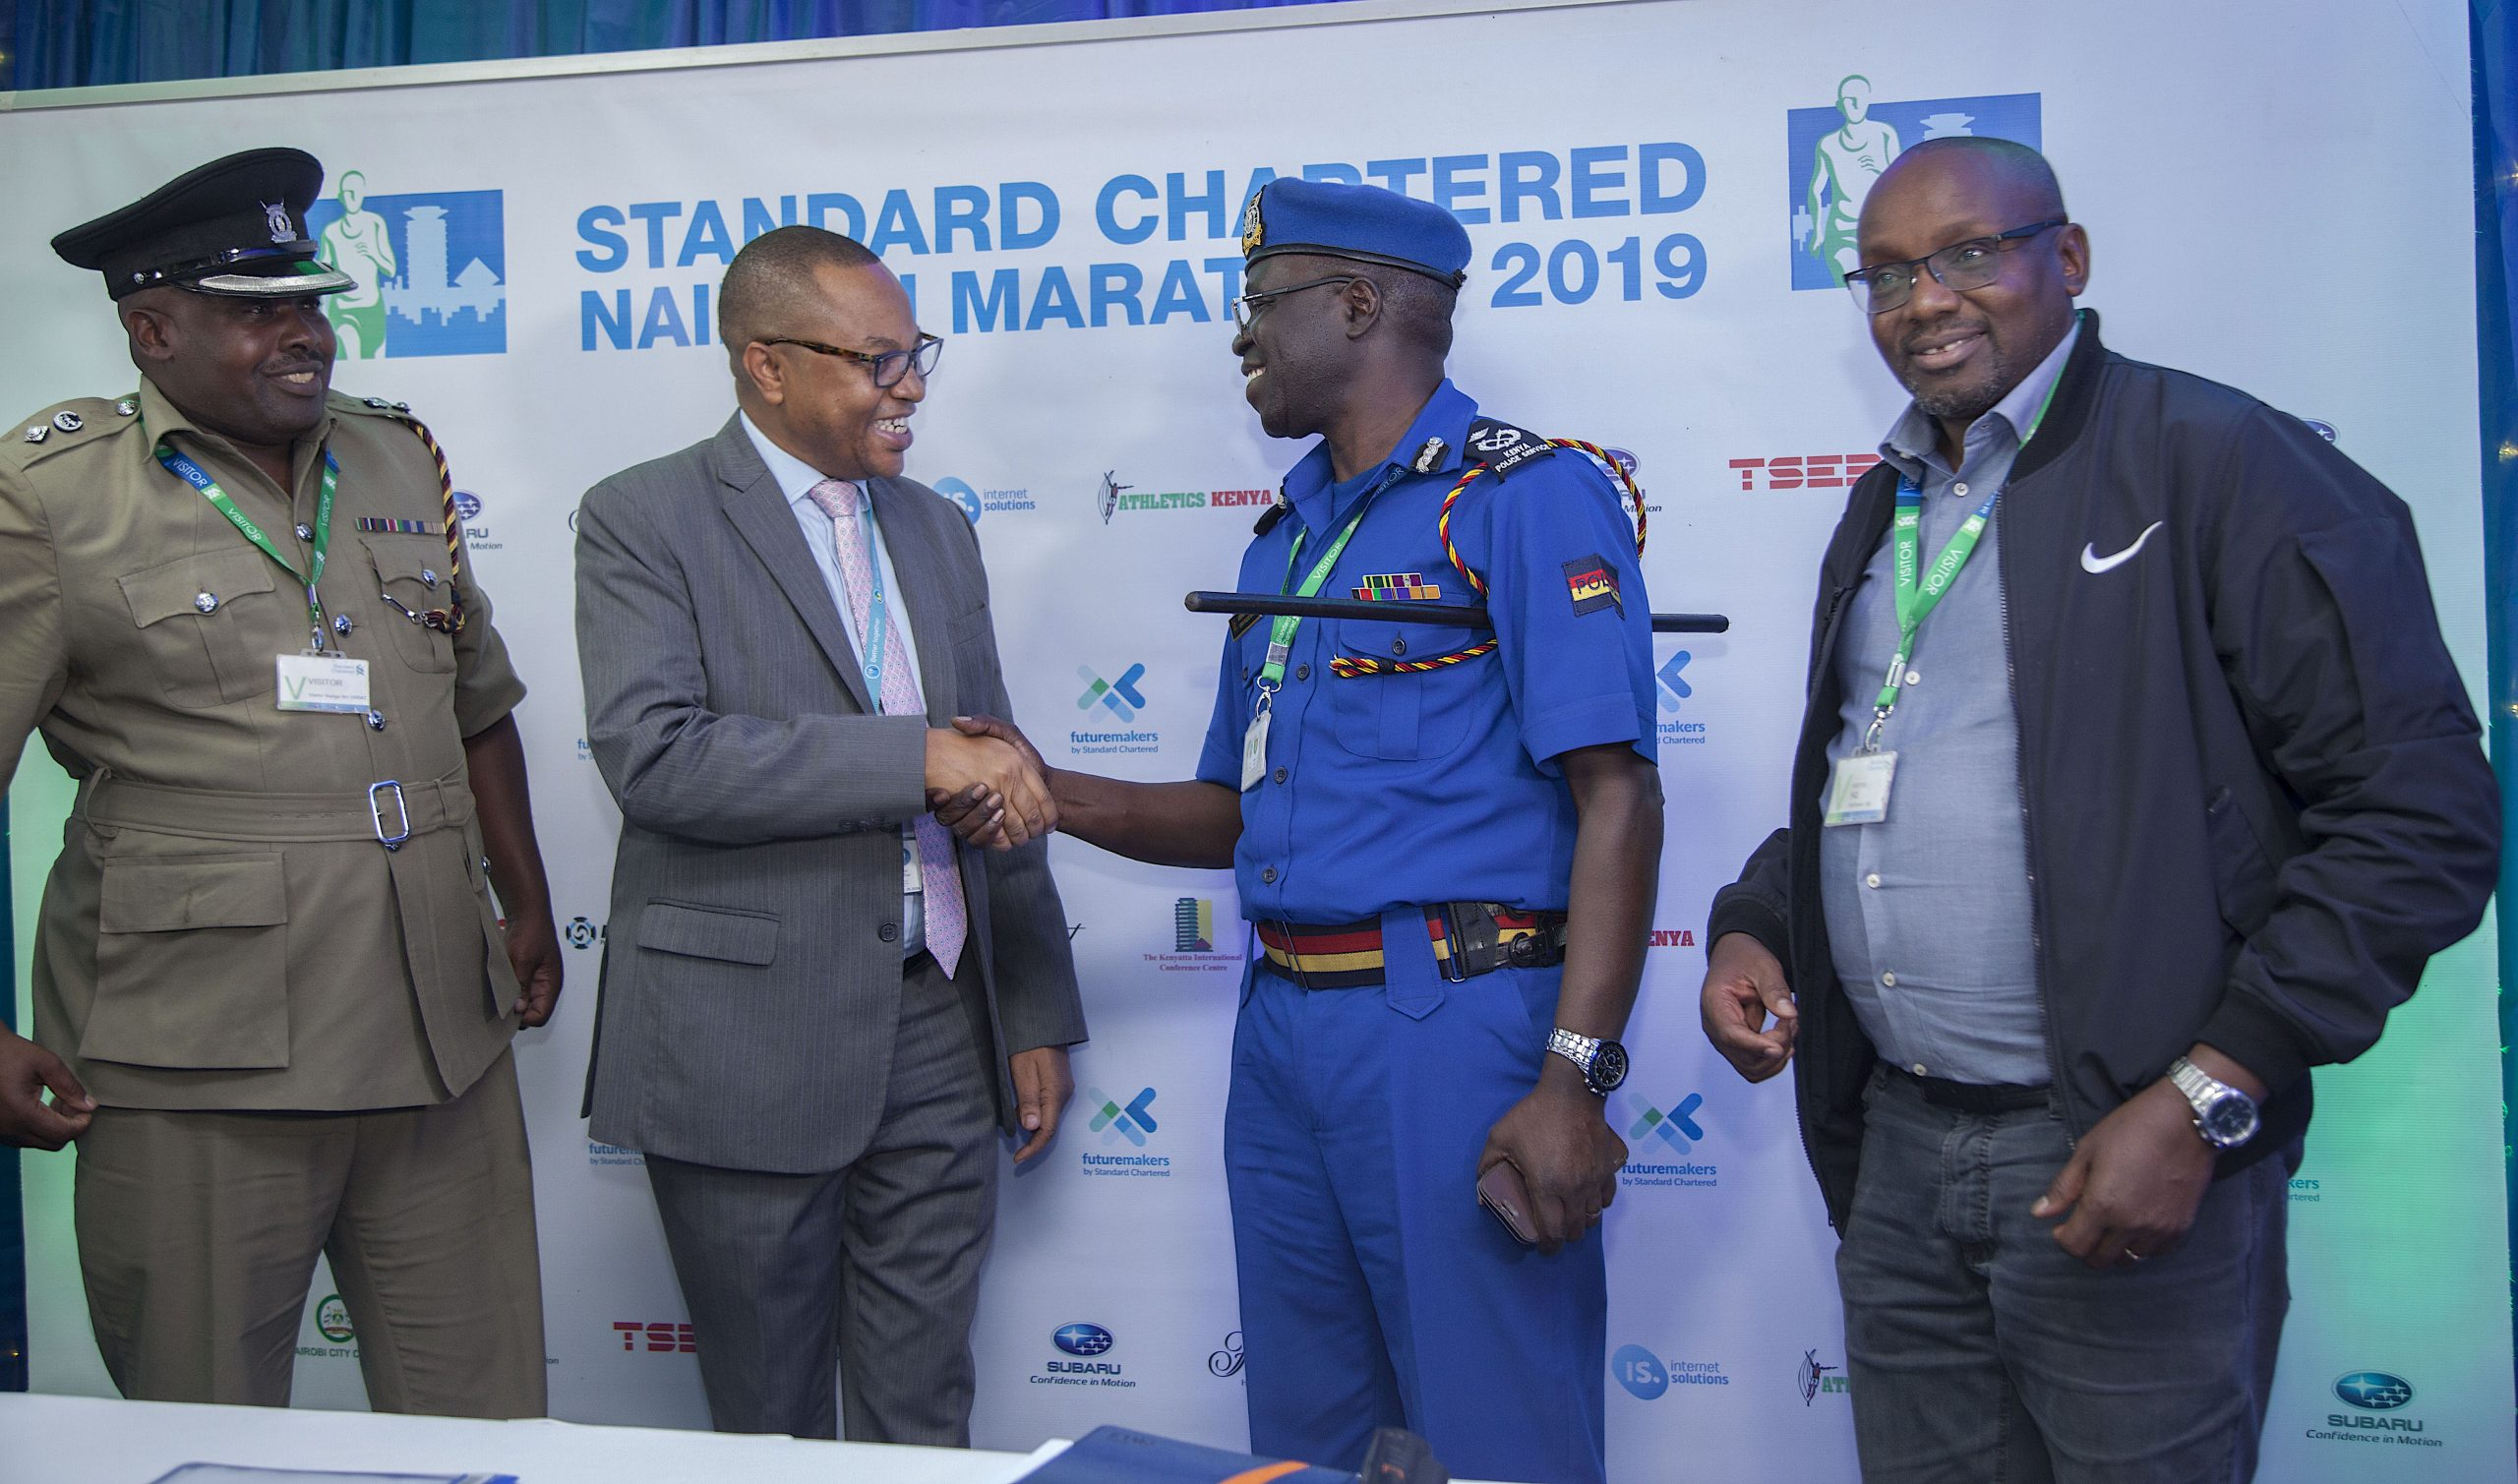 From left ,Supretendent of Police Nairobi Area Samuel Boit, Standard Chartered Marathon organising committee Chairman Peter Gitau, Nairobi Area Traffic Commander Joshua Omukata and Athletics Kenya Nairobi Region Chairman. www.businesstoday.co.ke